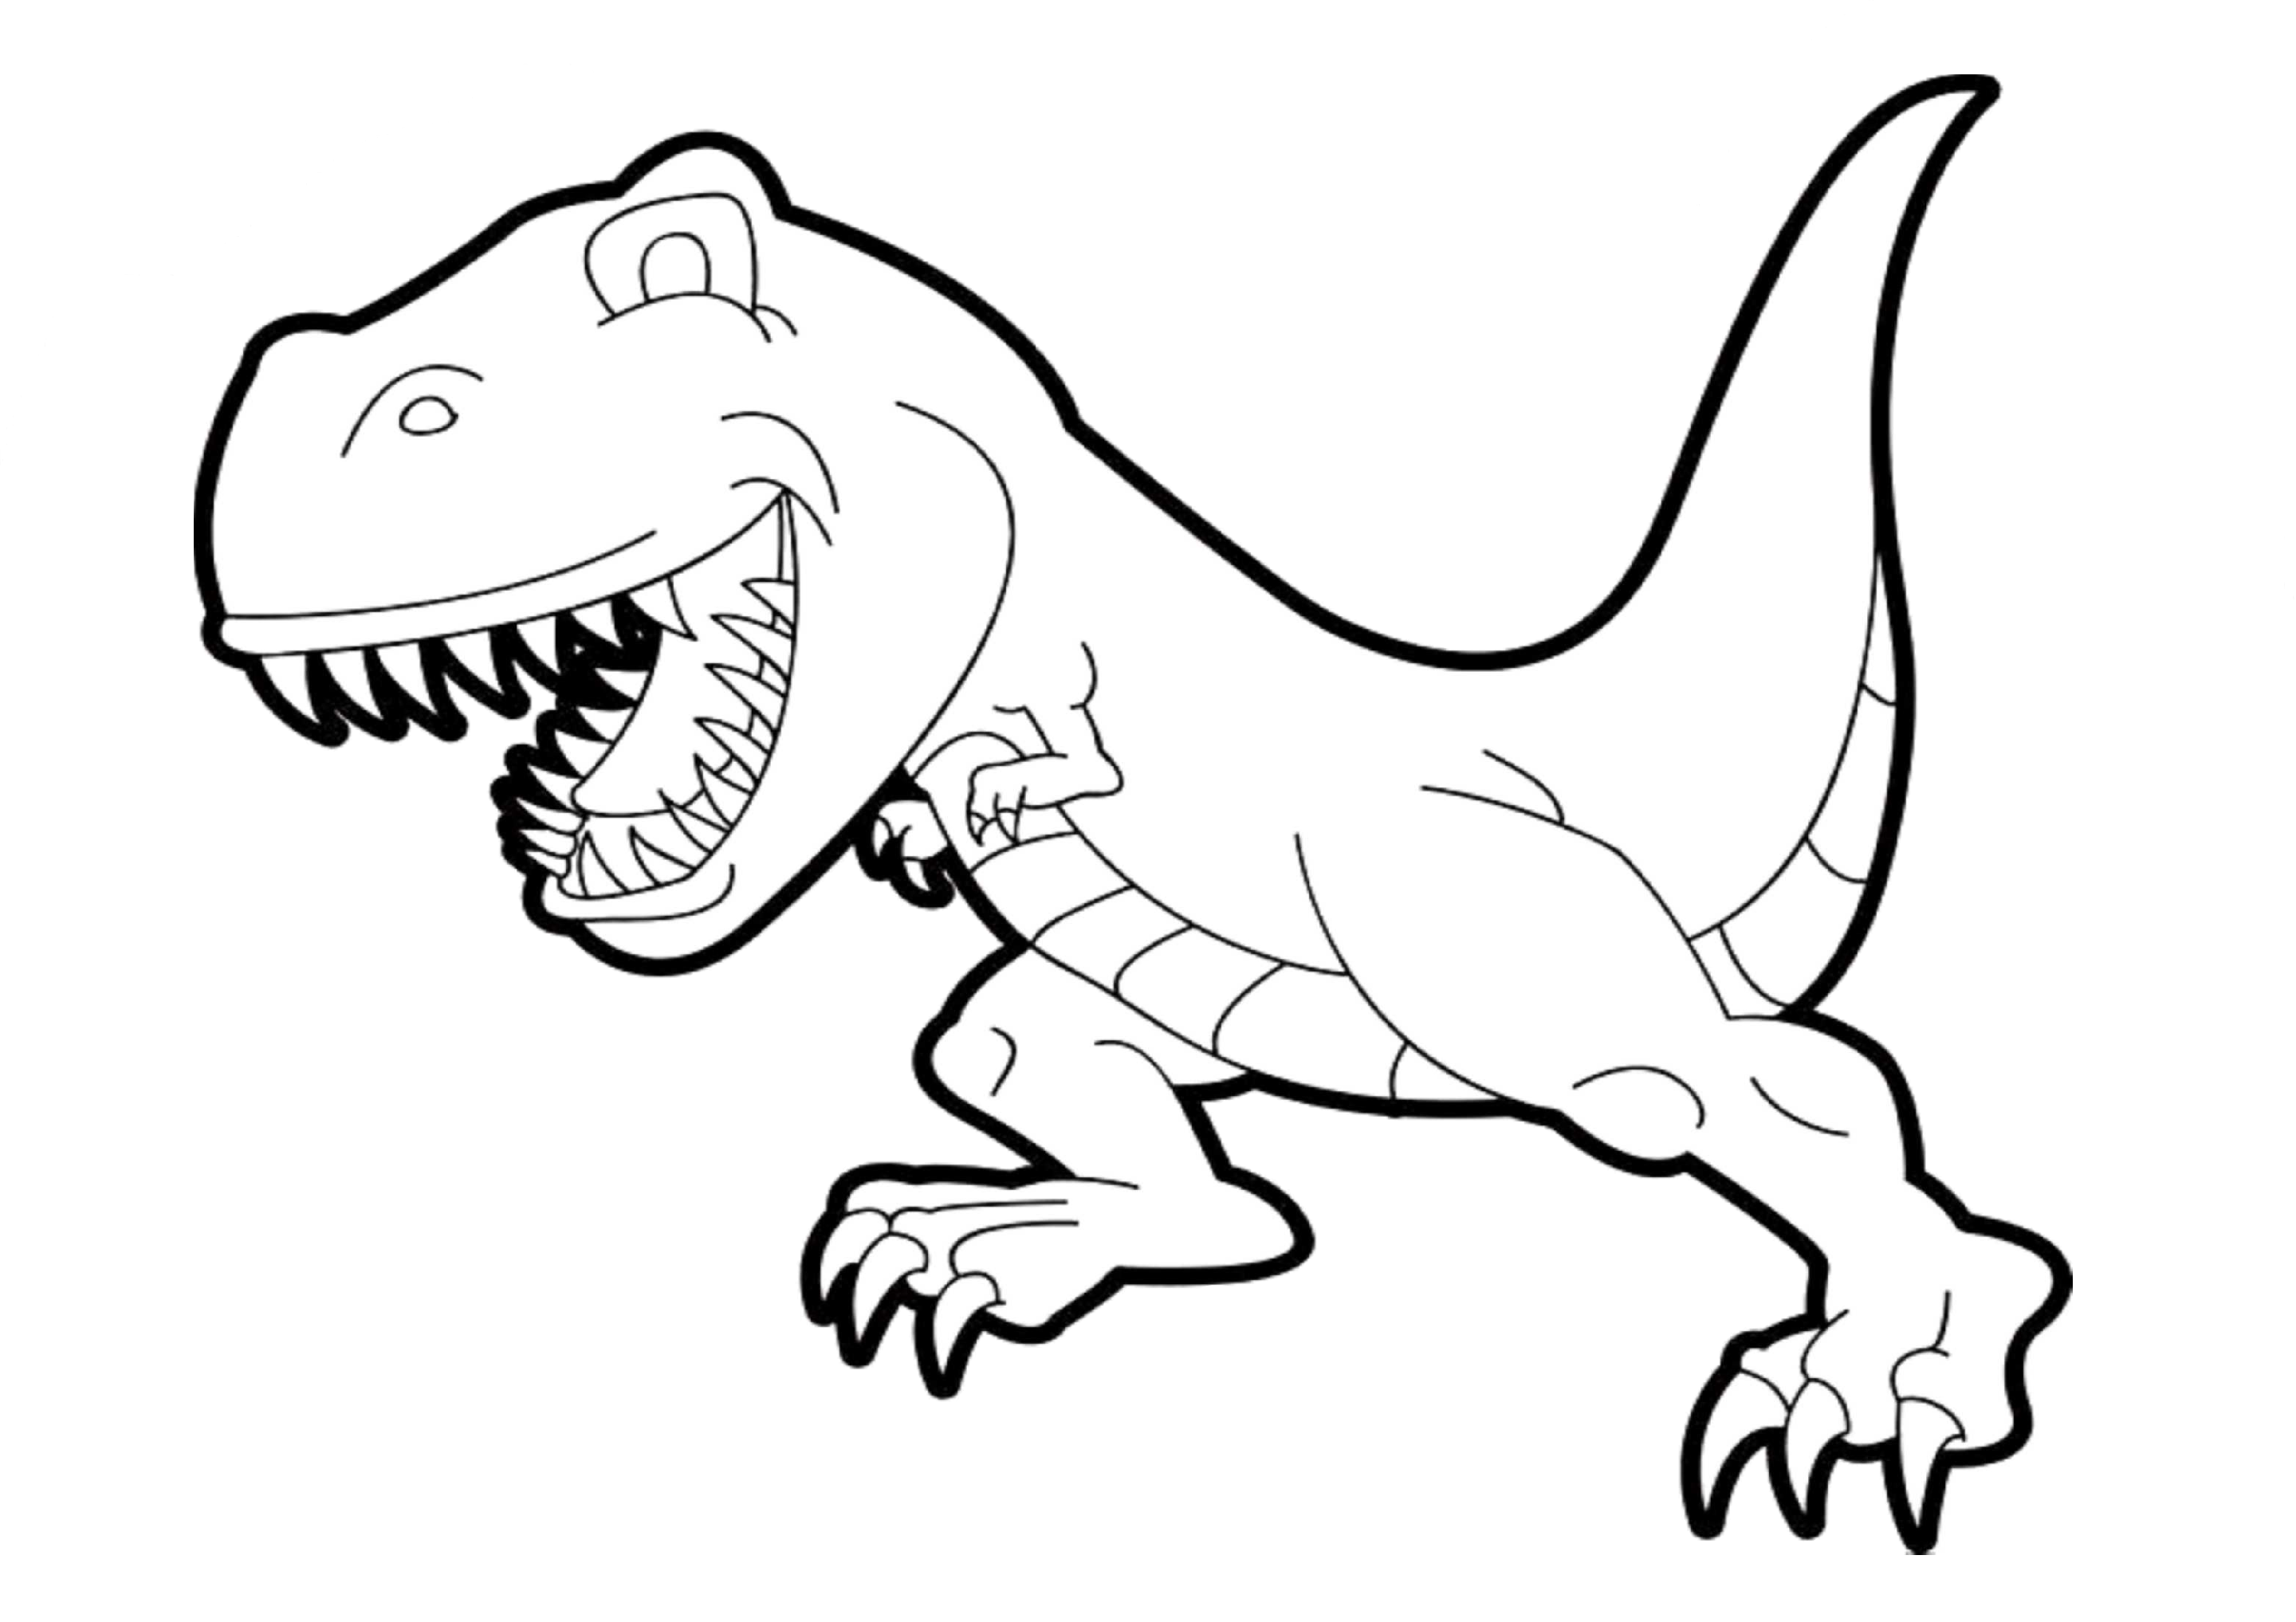 Easy Dinosaur Printable Coloring Page